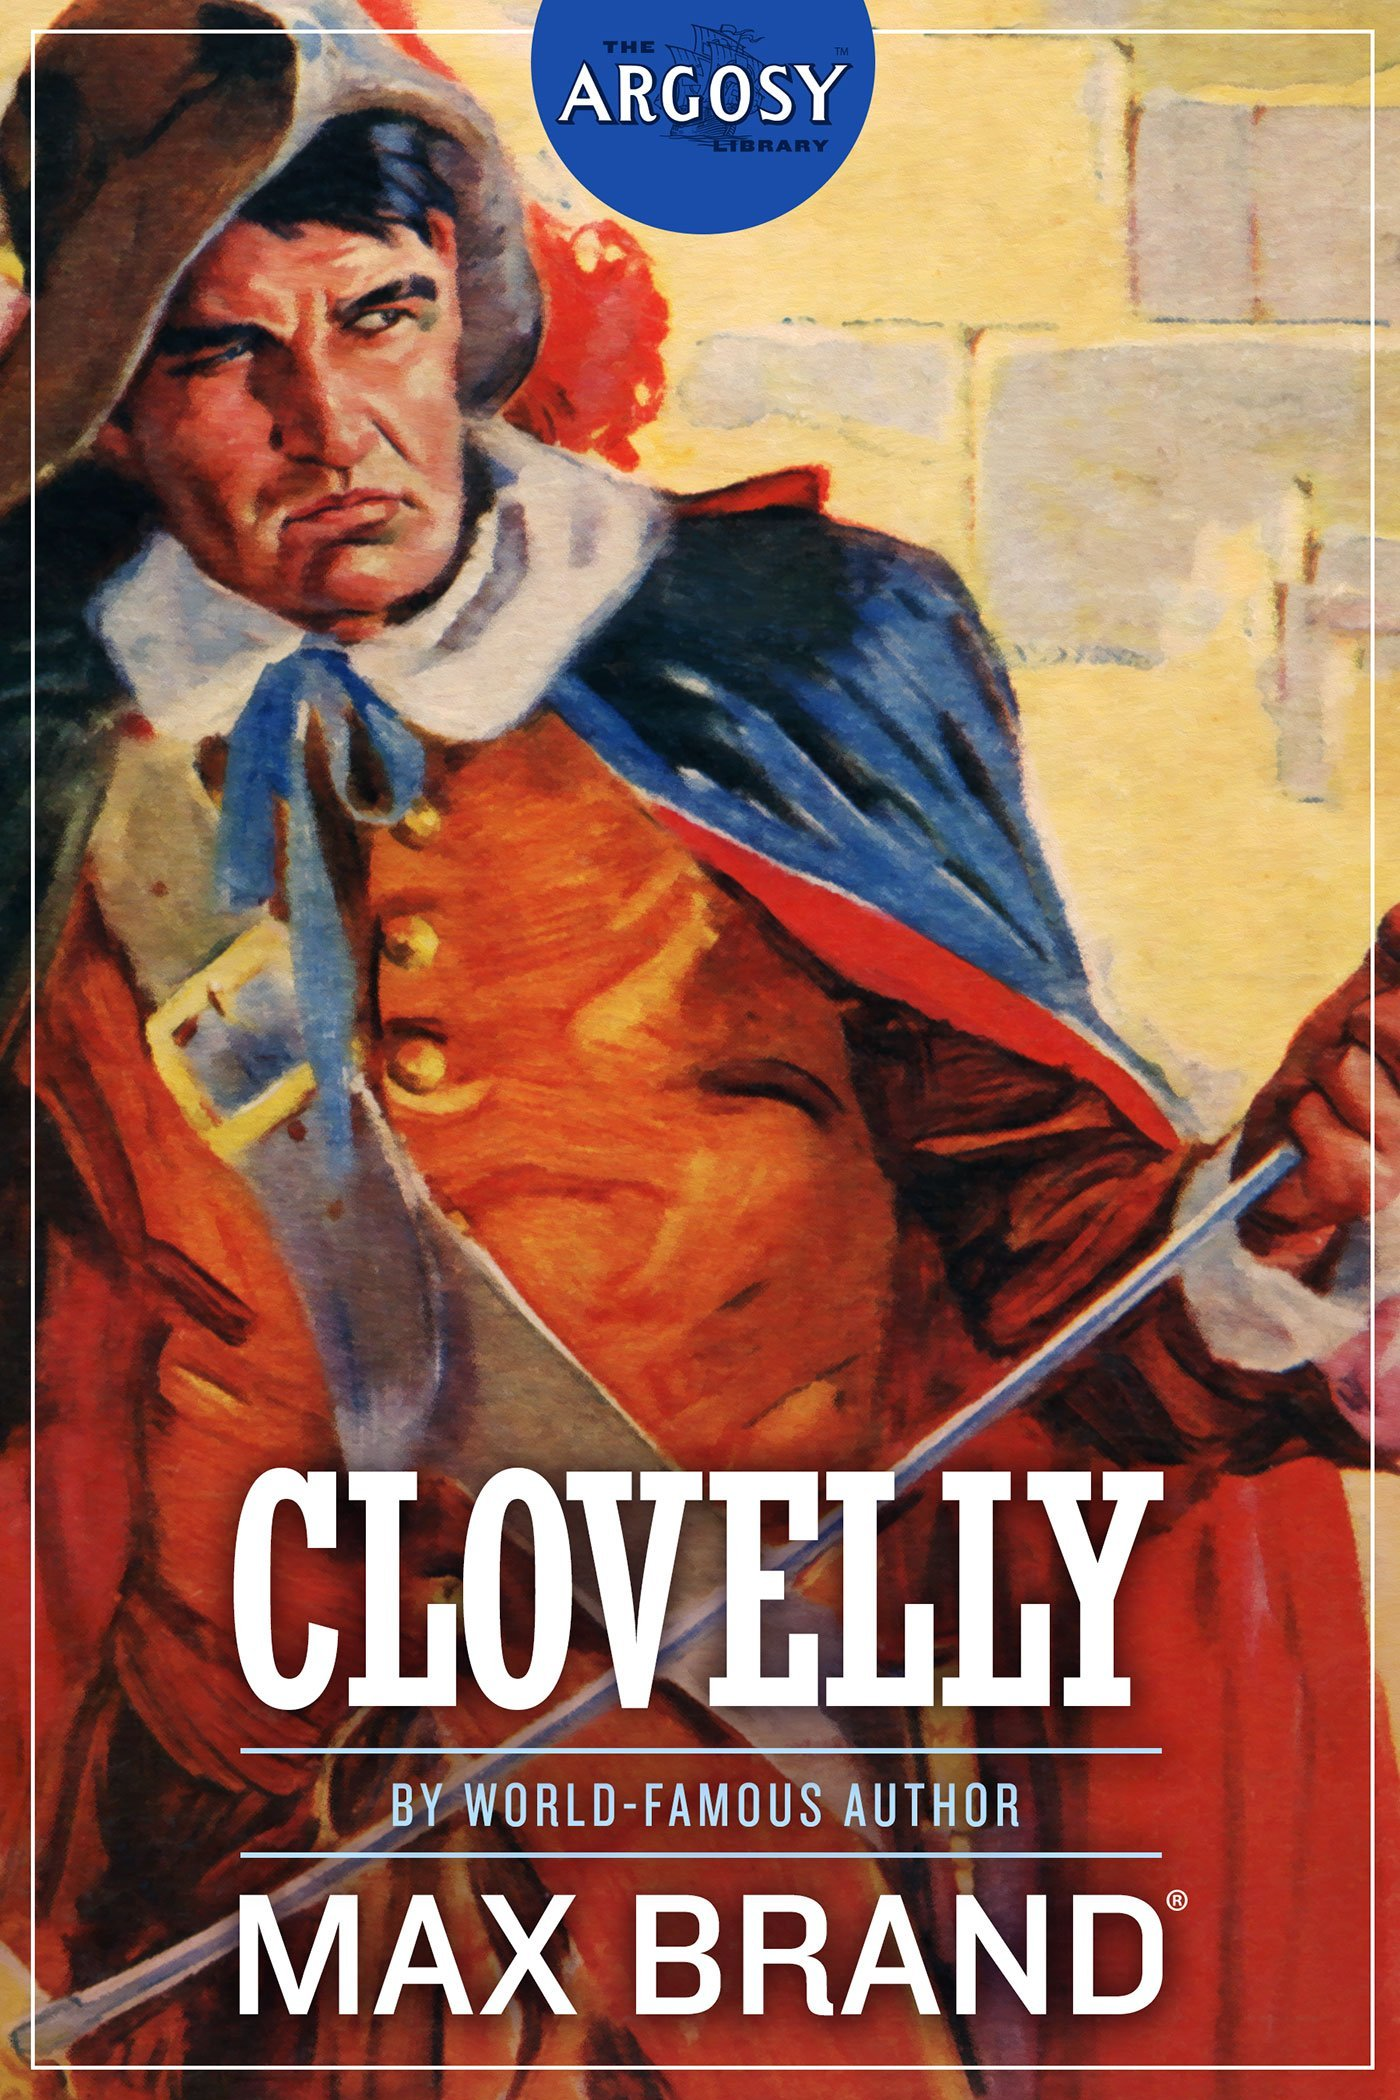 Clovelly (The Argosy Library) by Max Brand